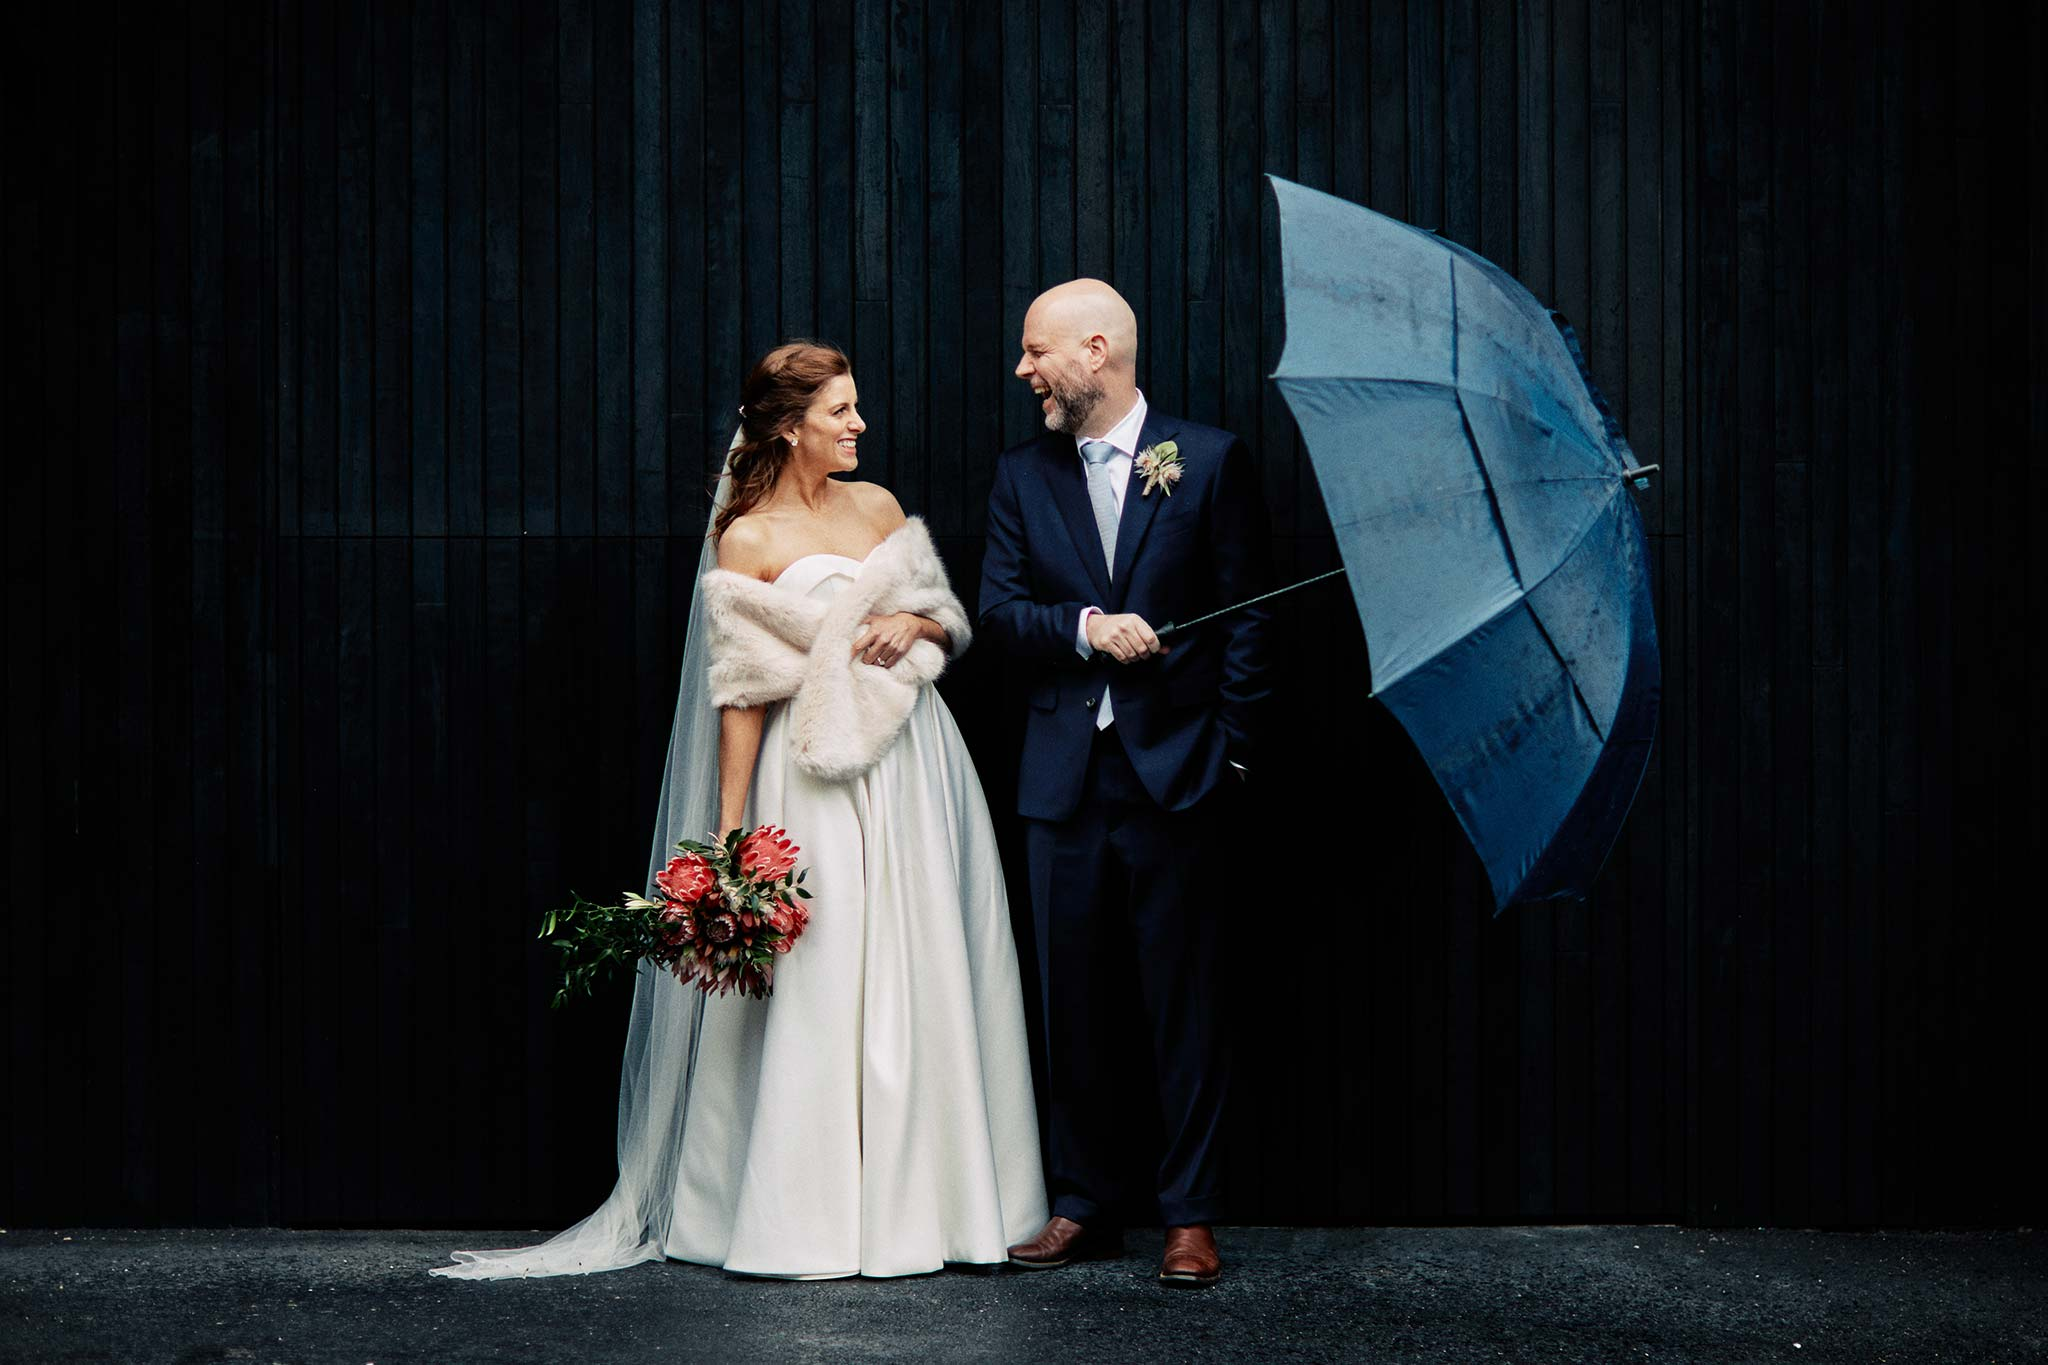 East Melbourne Wedding rain portrait bride groom umbrella elegant